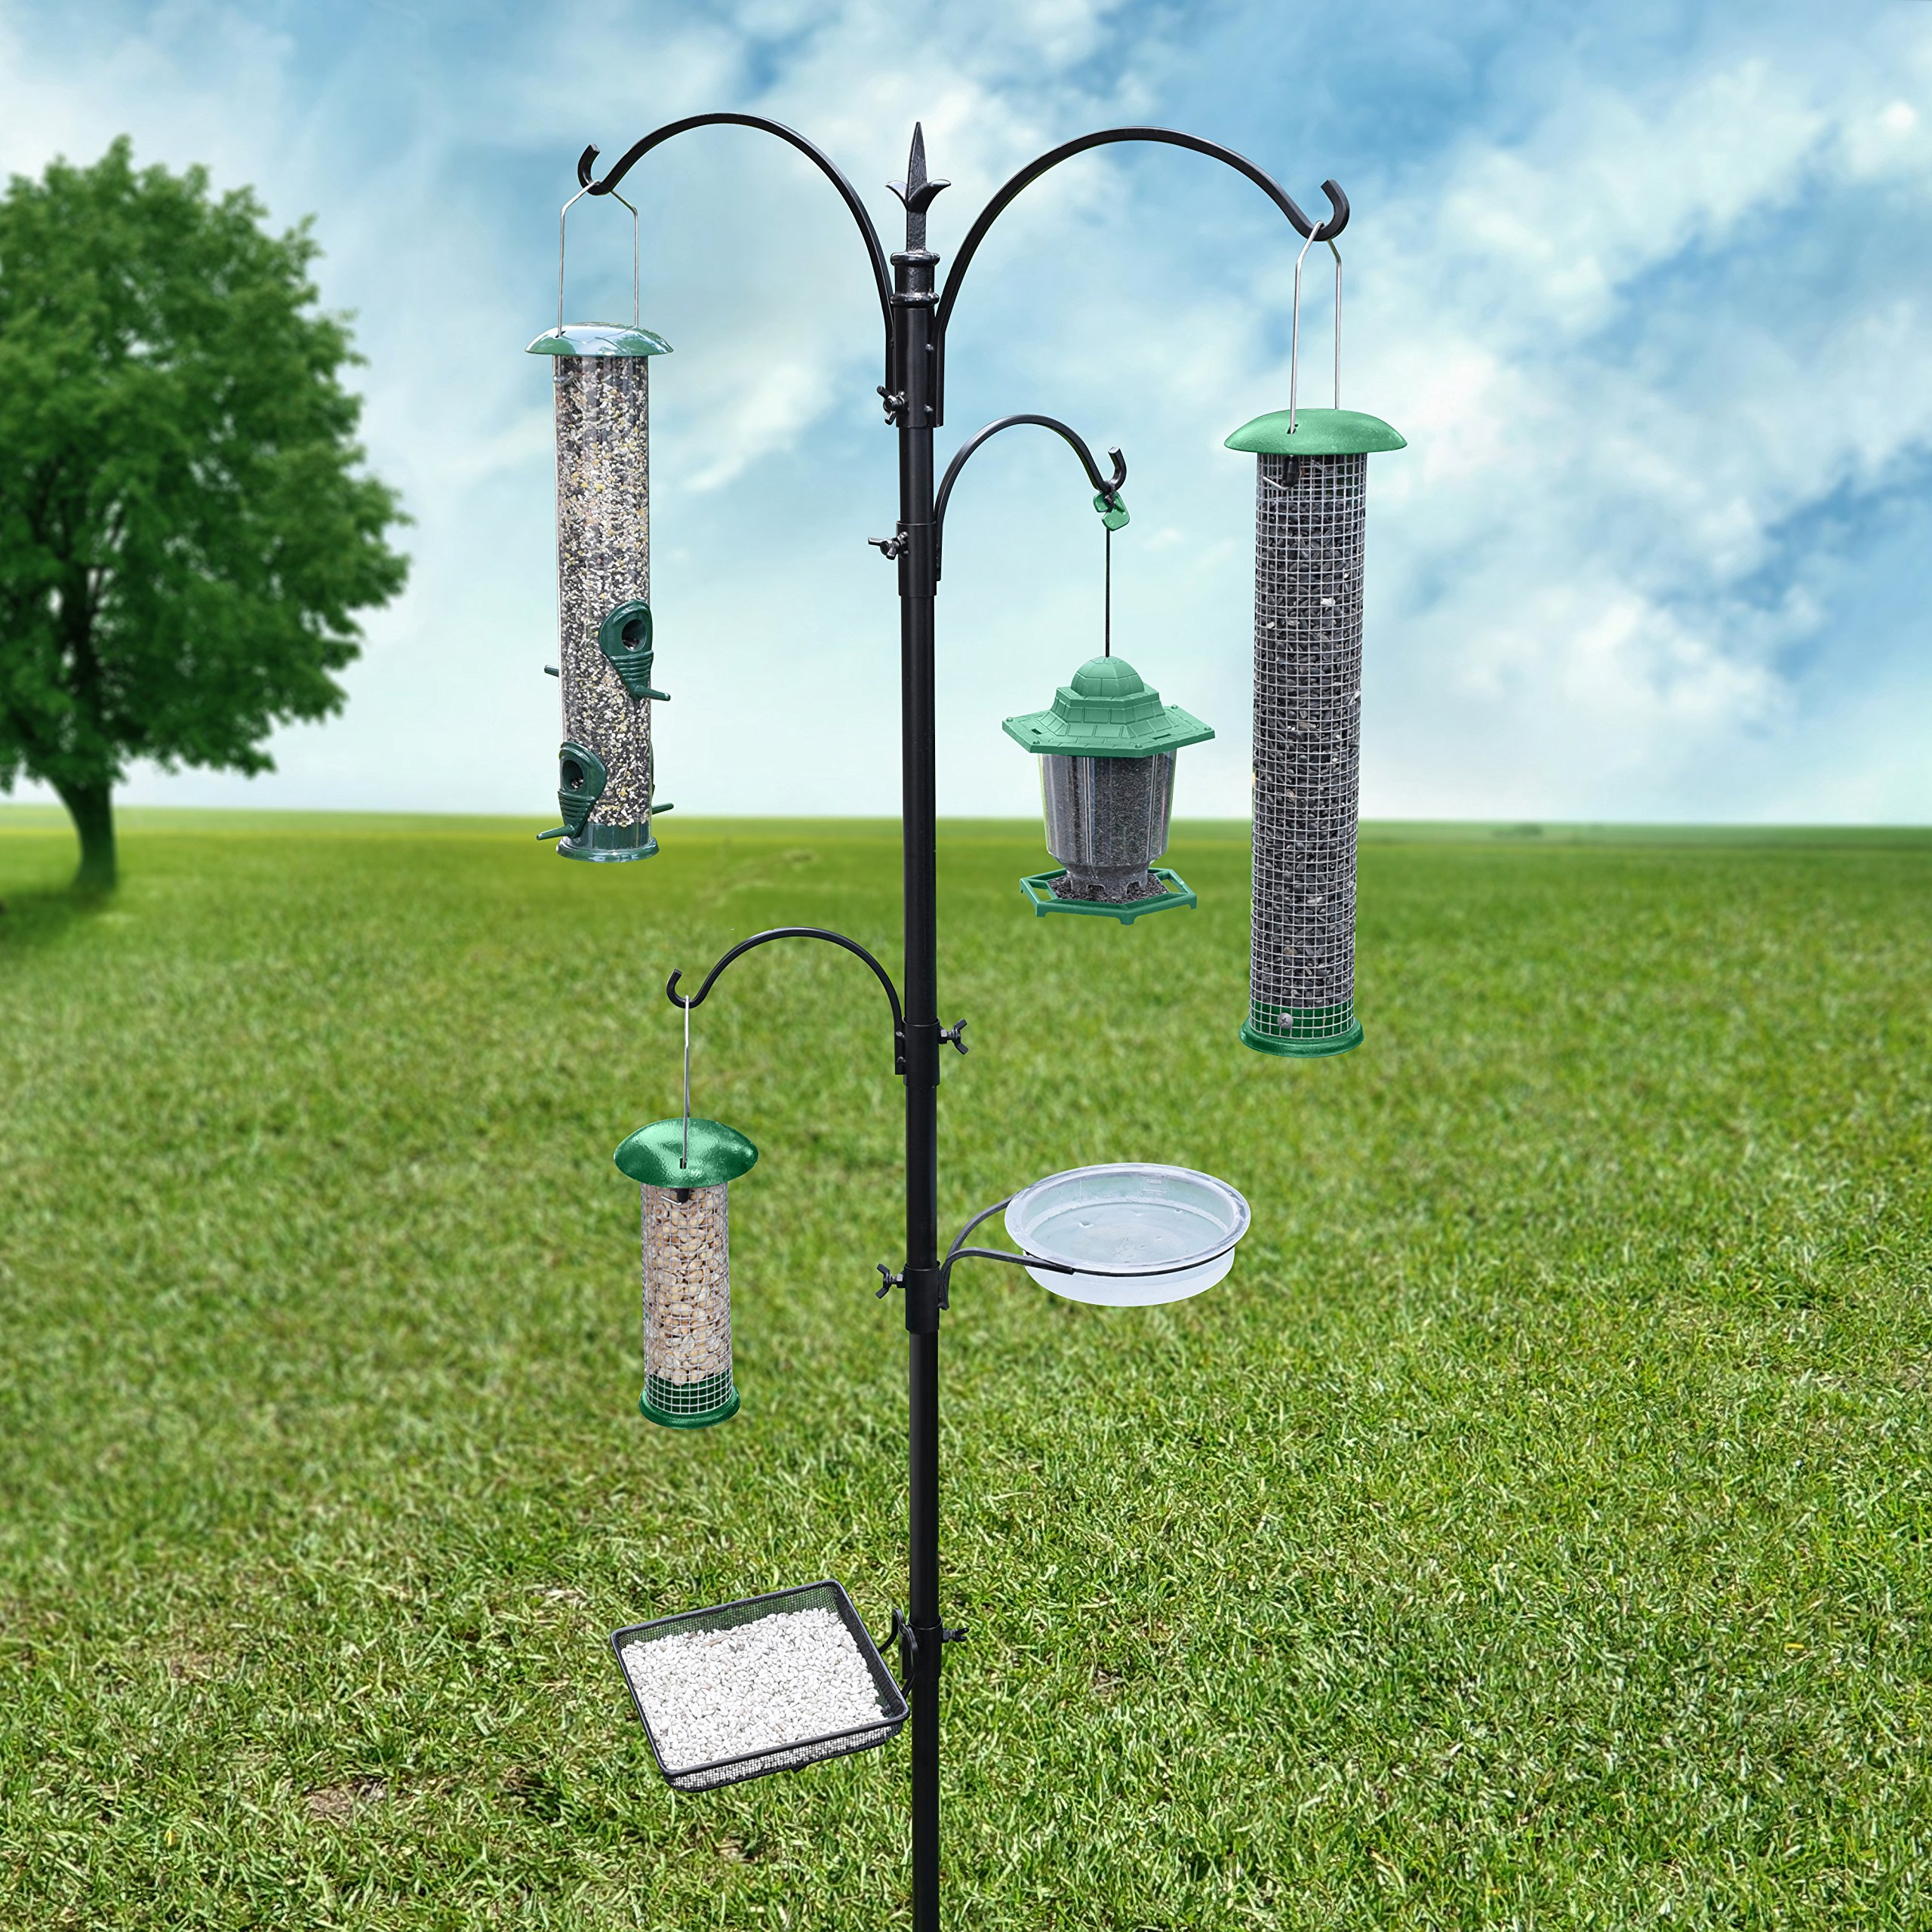 Gray Bunny GB-6844D Deluxe Premium Bird Feeding Station, 22'' Wide x 91'' Tall (82 inch above ground) Black, Multi Feeder Hanging Kit & Bird Bath For Attracting Wild Birds, Birdfeeder & Planter Hanger by Gray Bunny (Image #7)